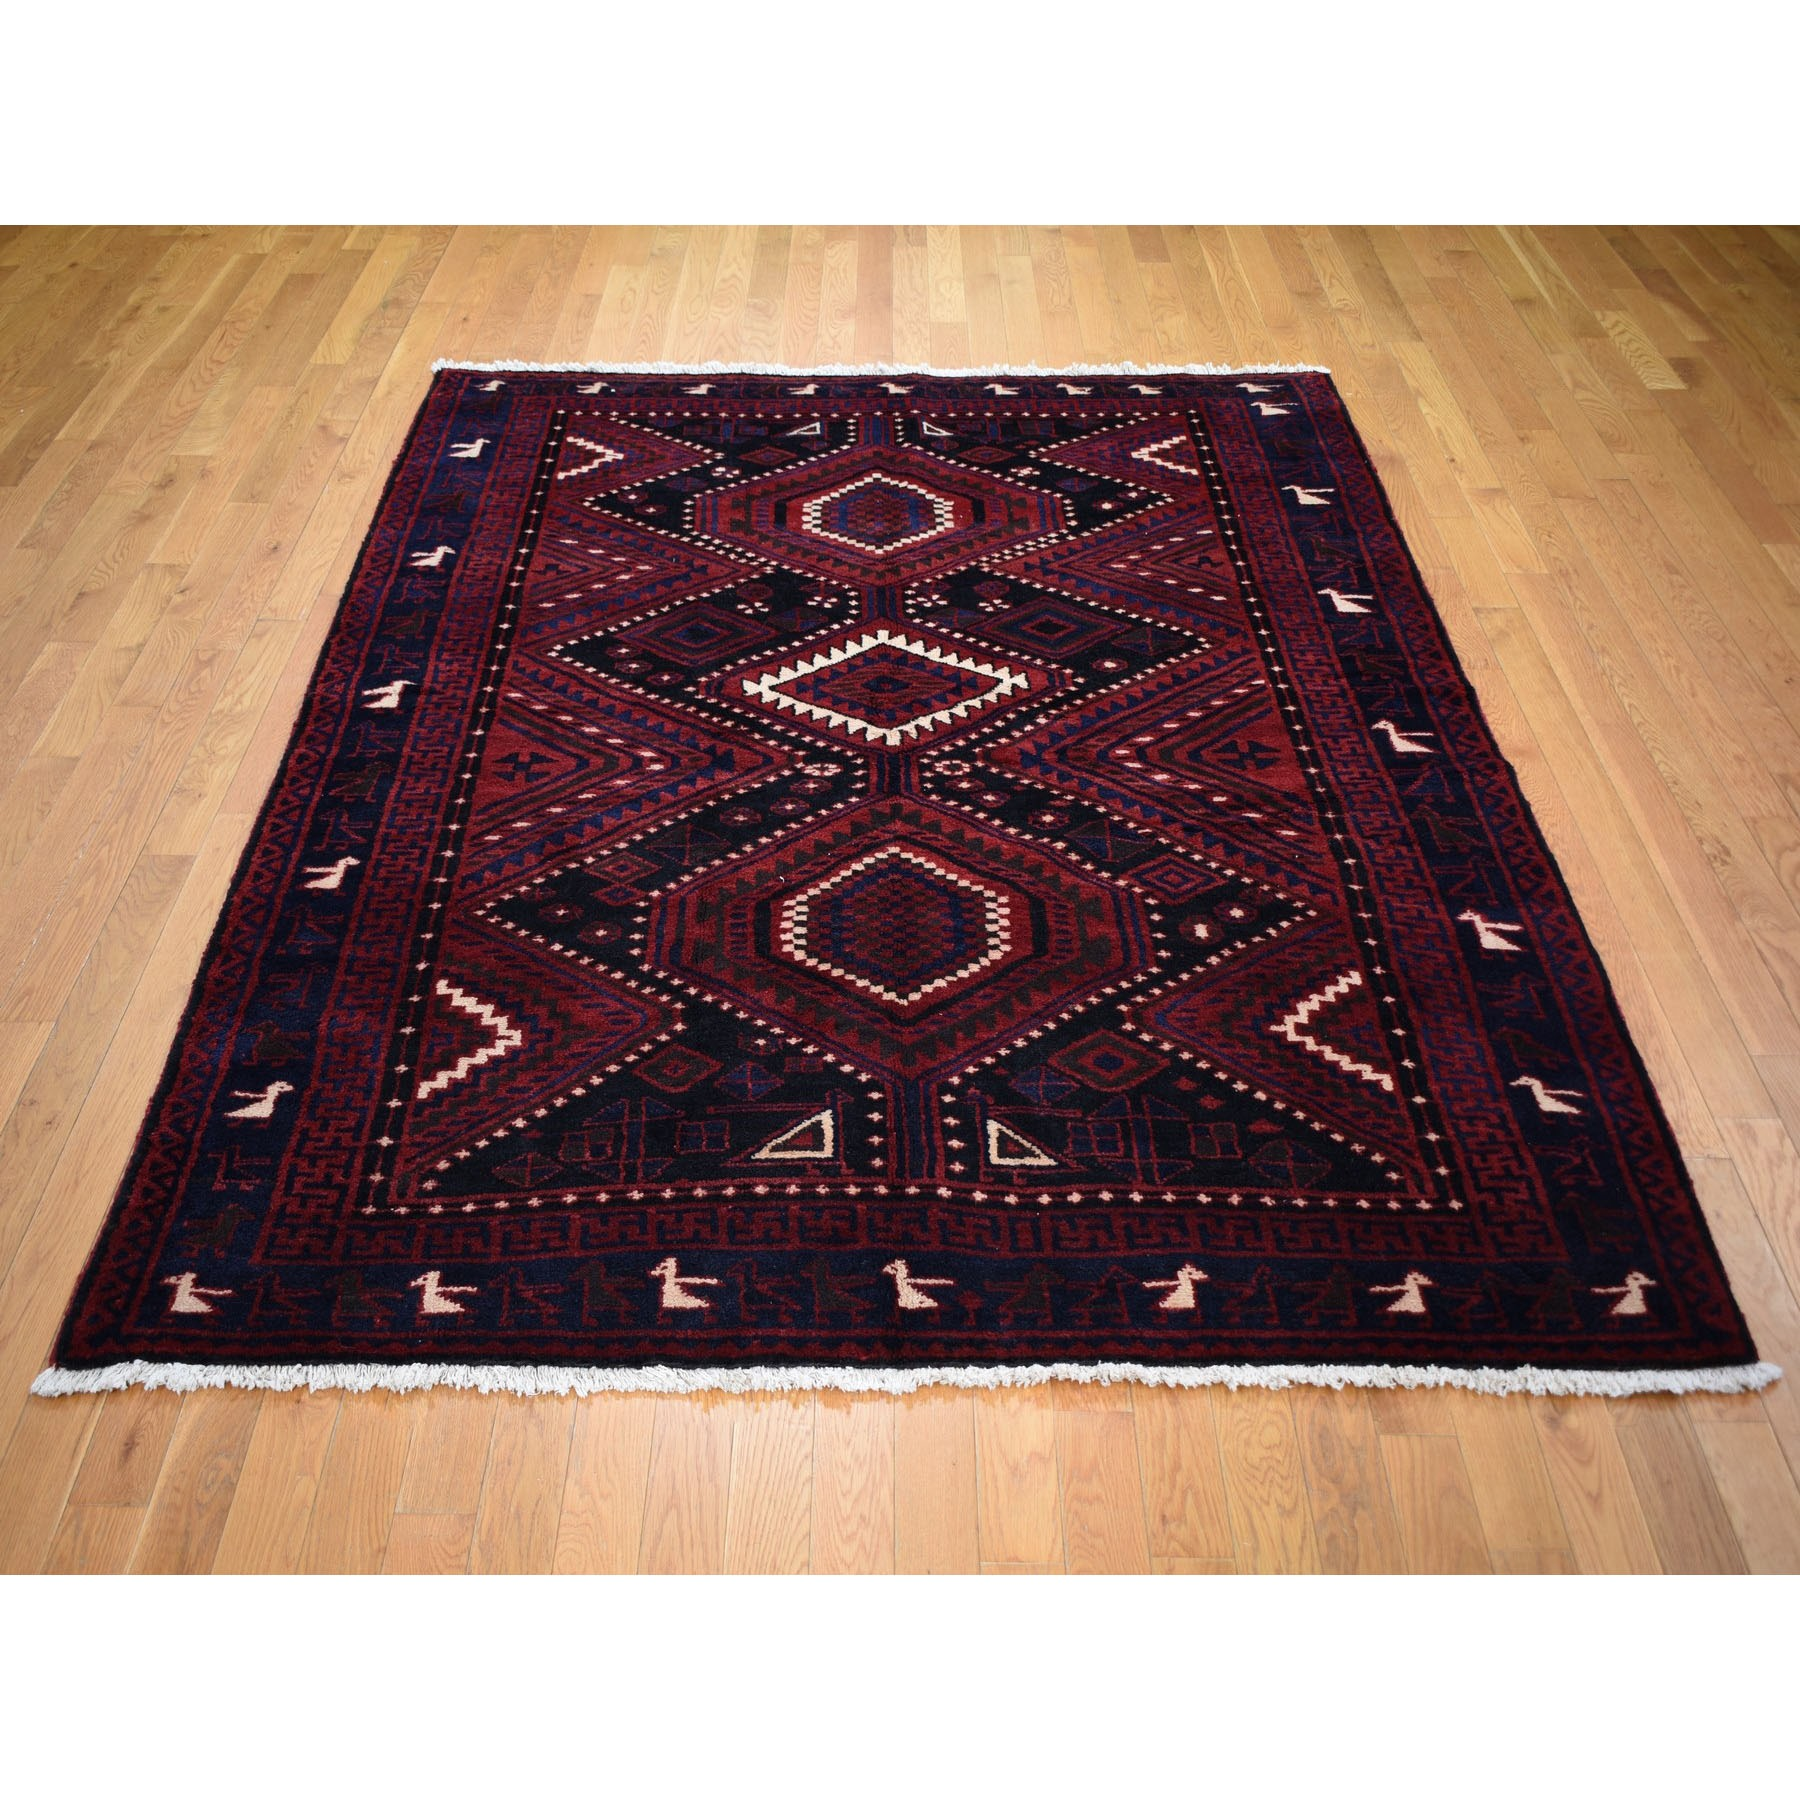 "6'1""x8'3"" Red New Persian Baluch Full Pile Pure Wool Hand Woven Oriental Rug"